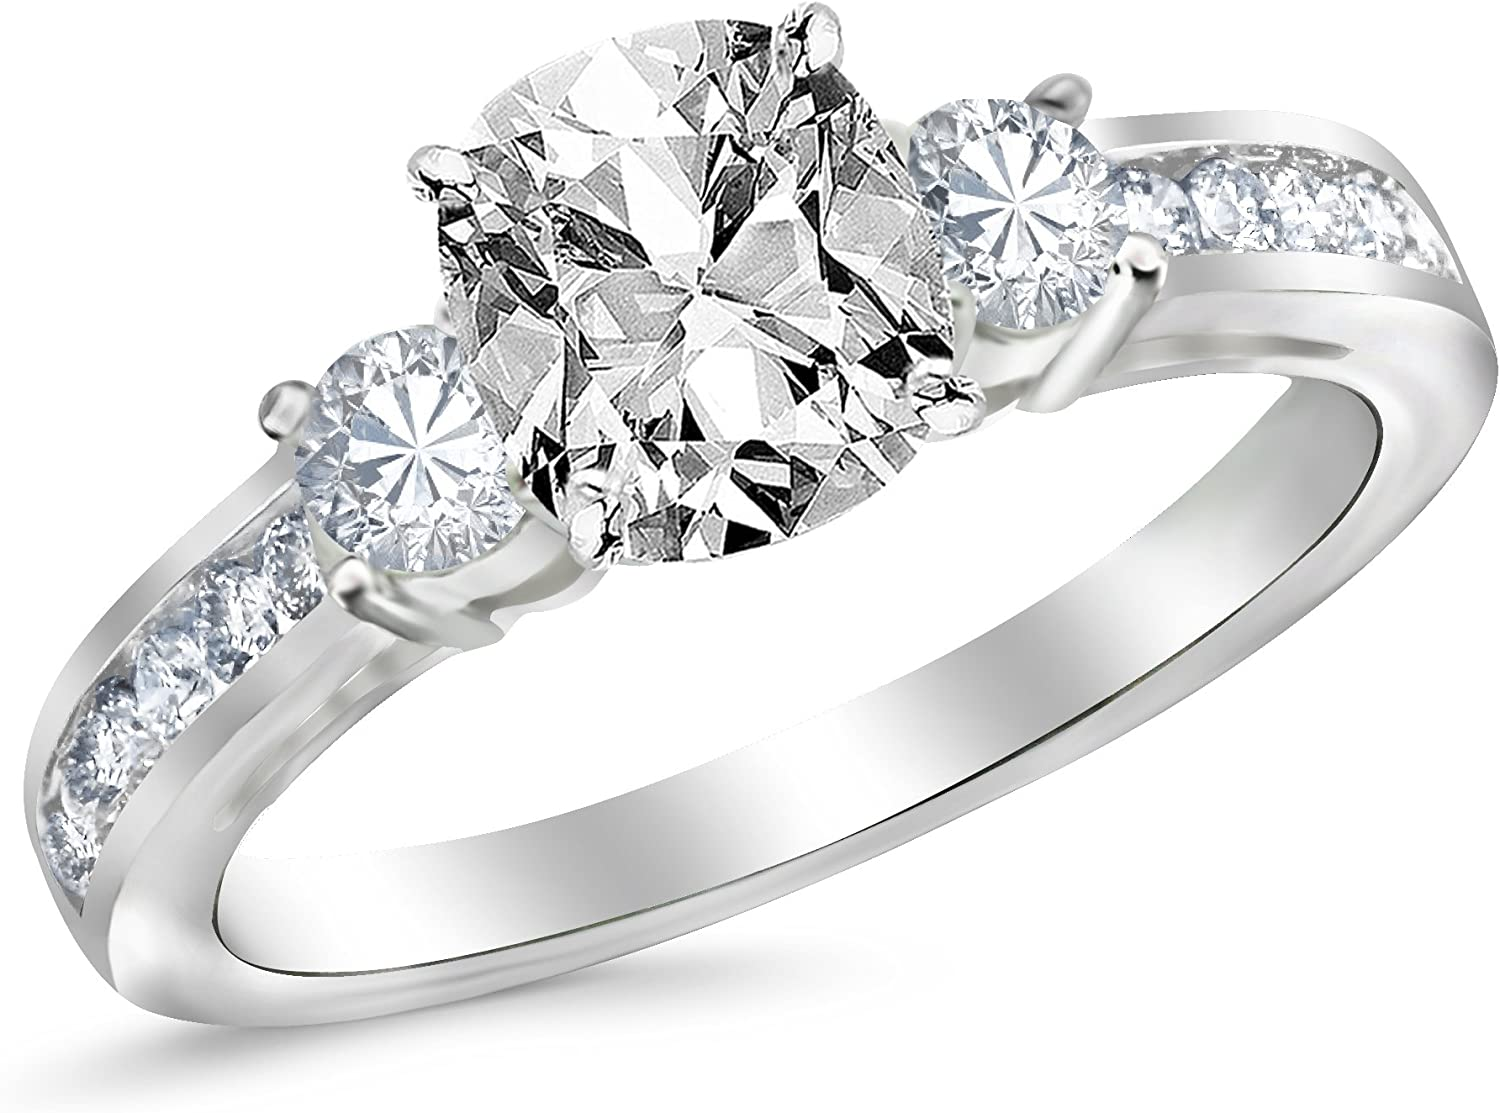 2 Ctw 14K White Gold Channel Set 3 GIA Certified Stone Cus Over item handling Max 84% OFF ☆ Three